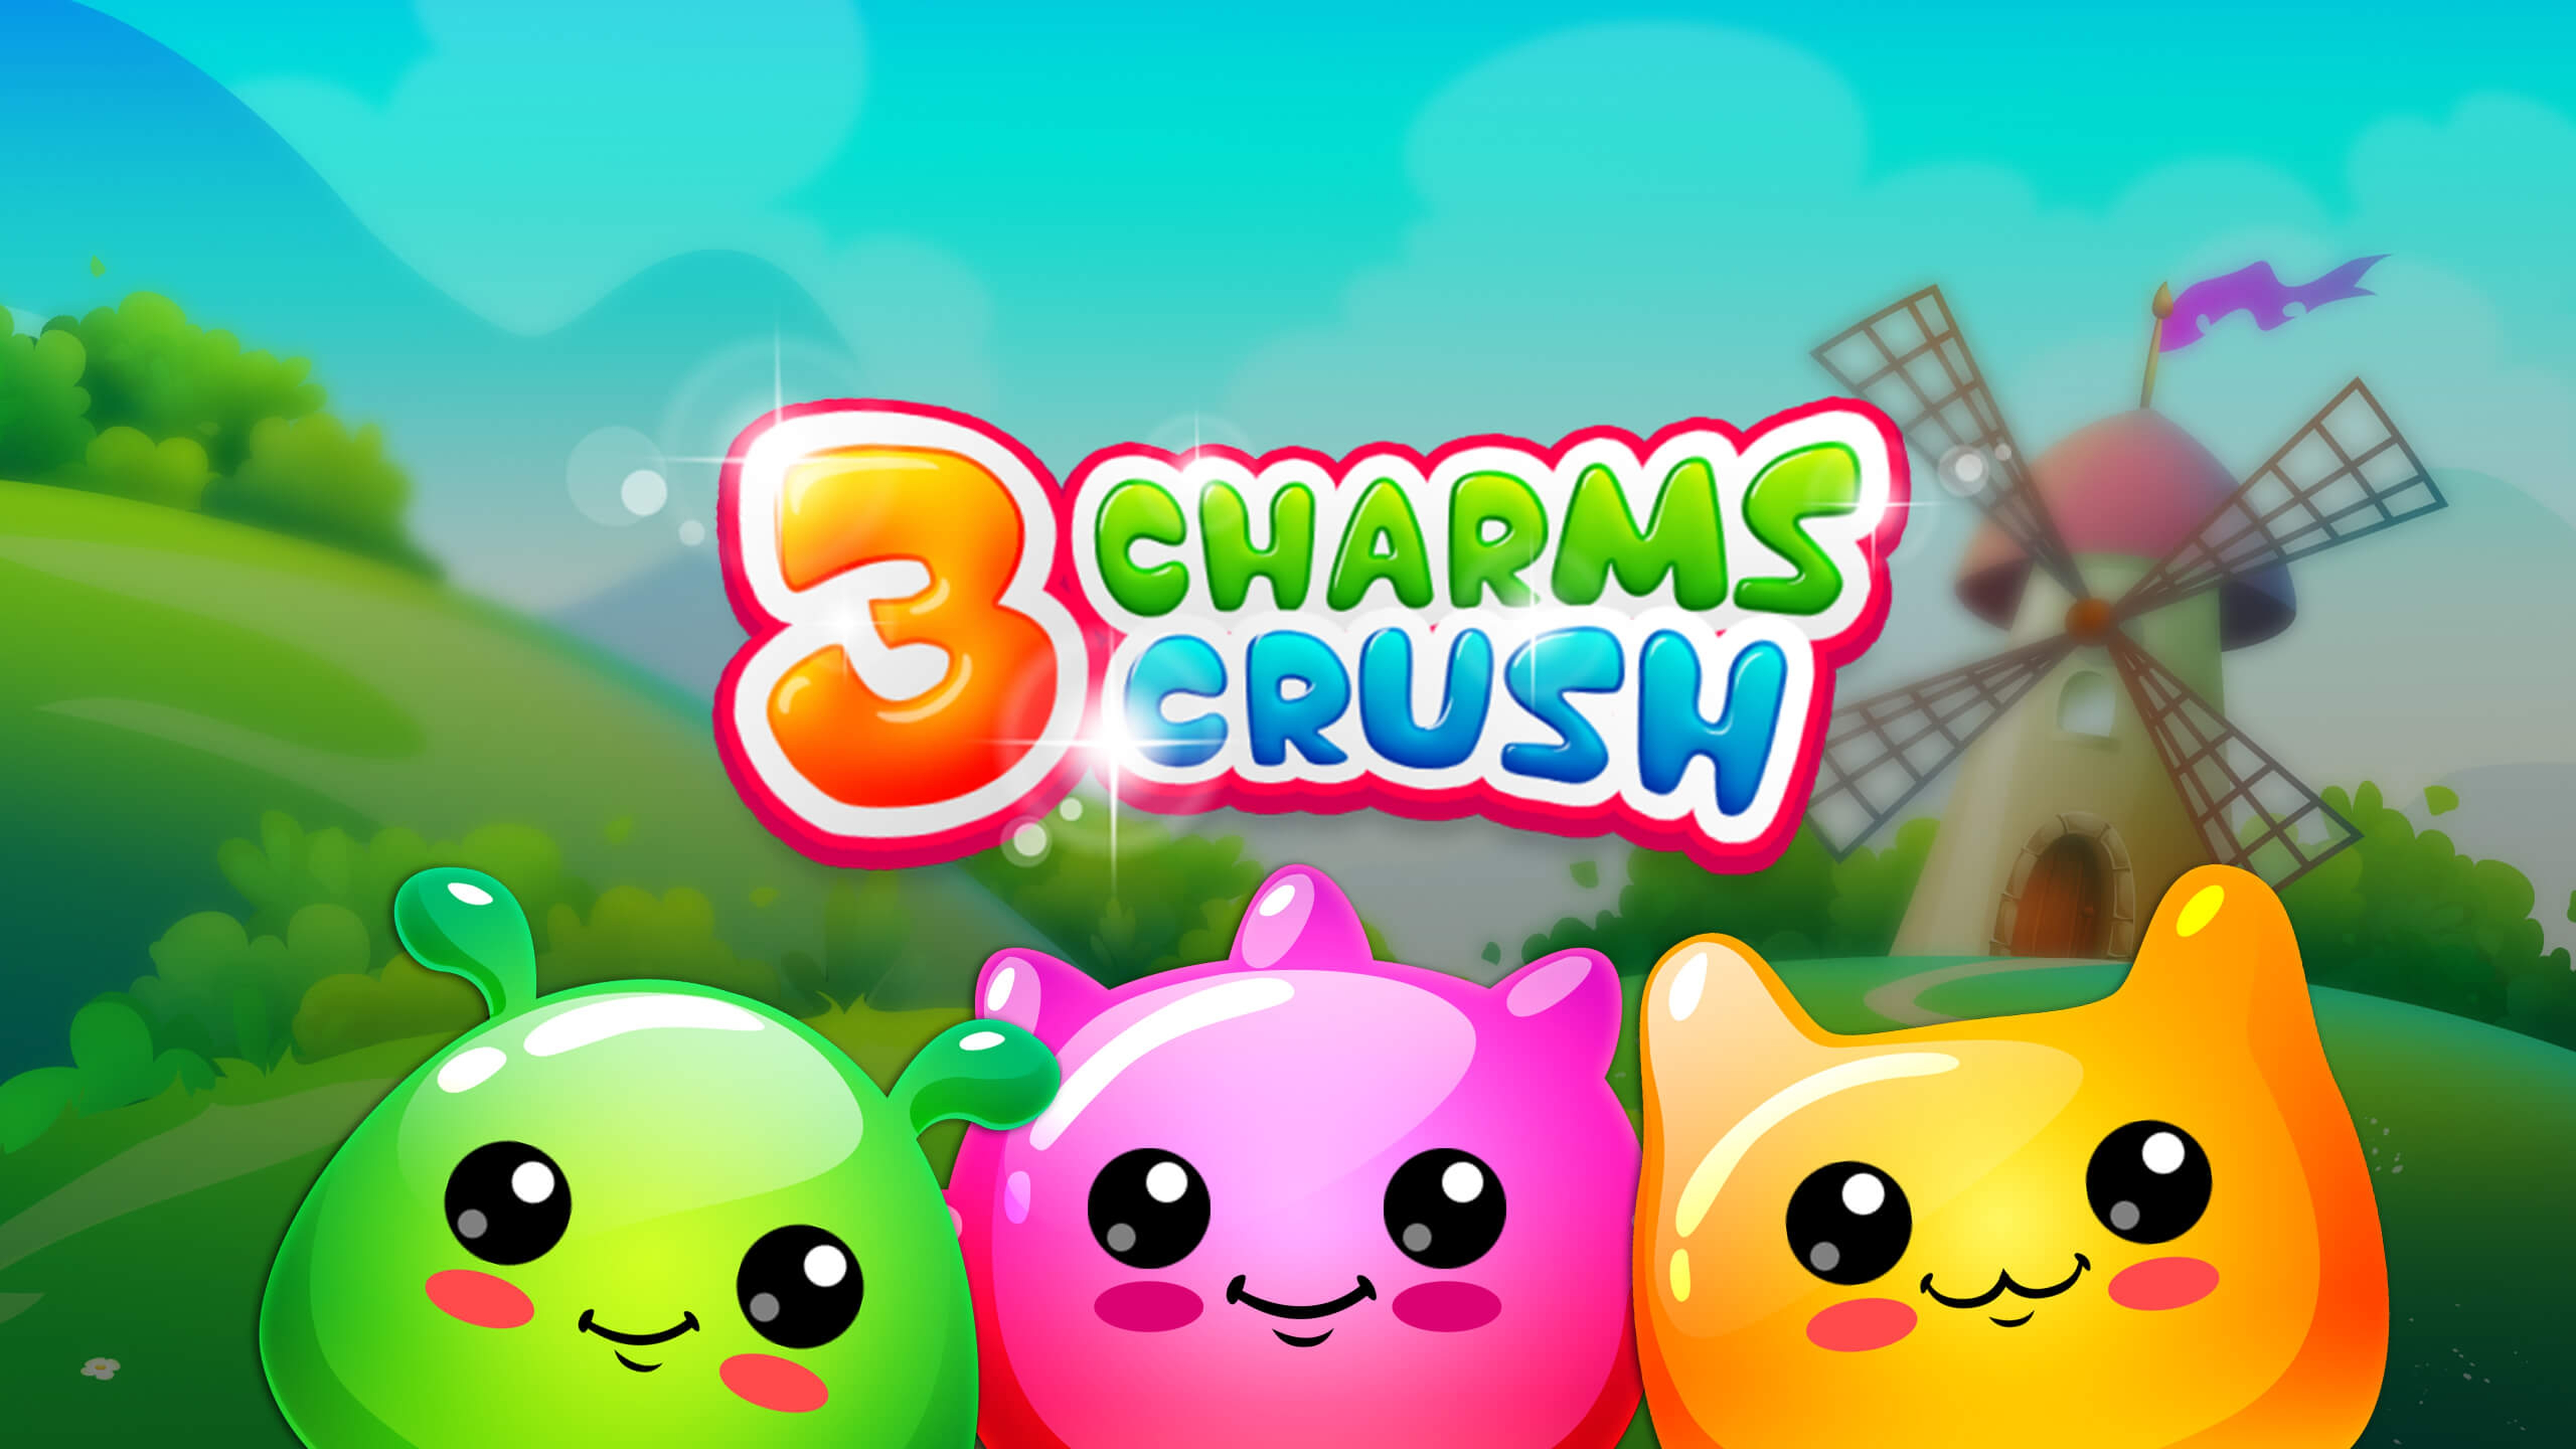 The 3 Charms Crush Online Slot Demo Game by iSoftBet